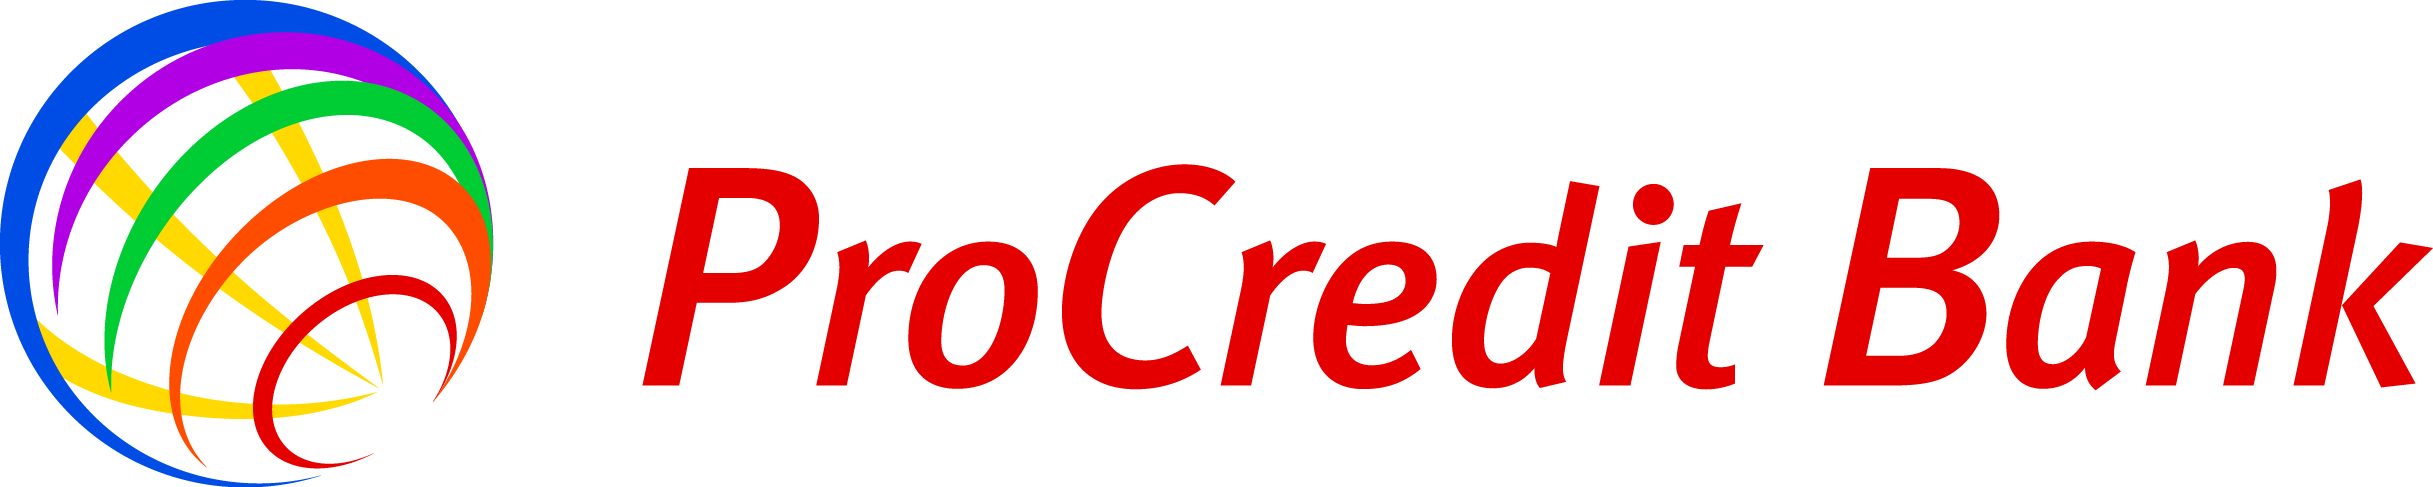 procredit-logo